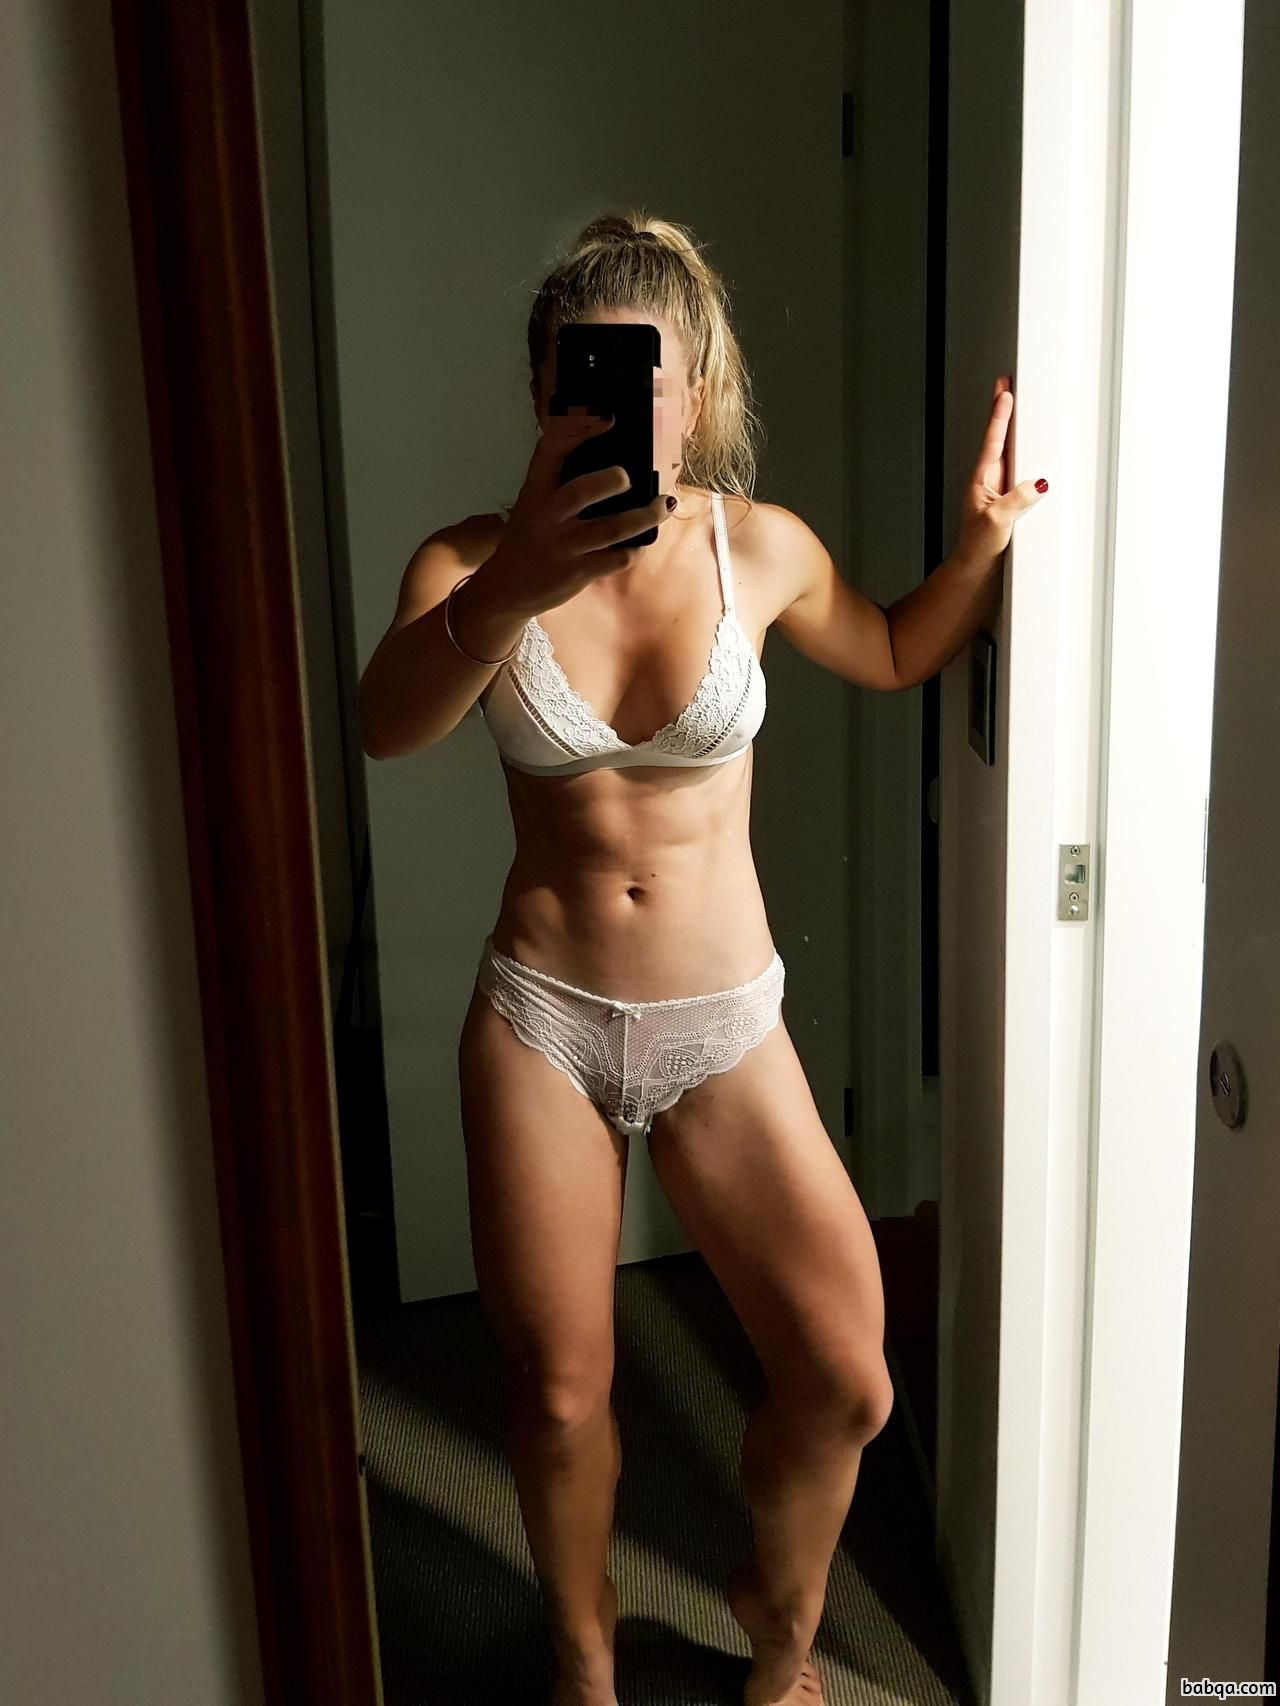 hot girl shows her ass repost from dailyhottfitness – sexy girl boy picture